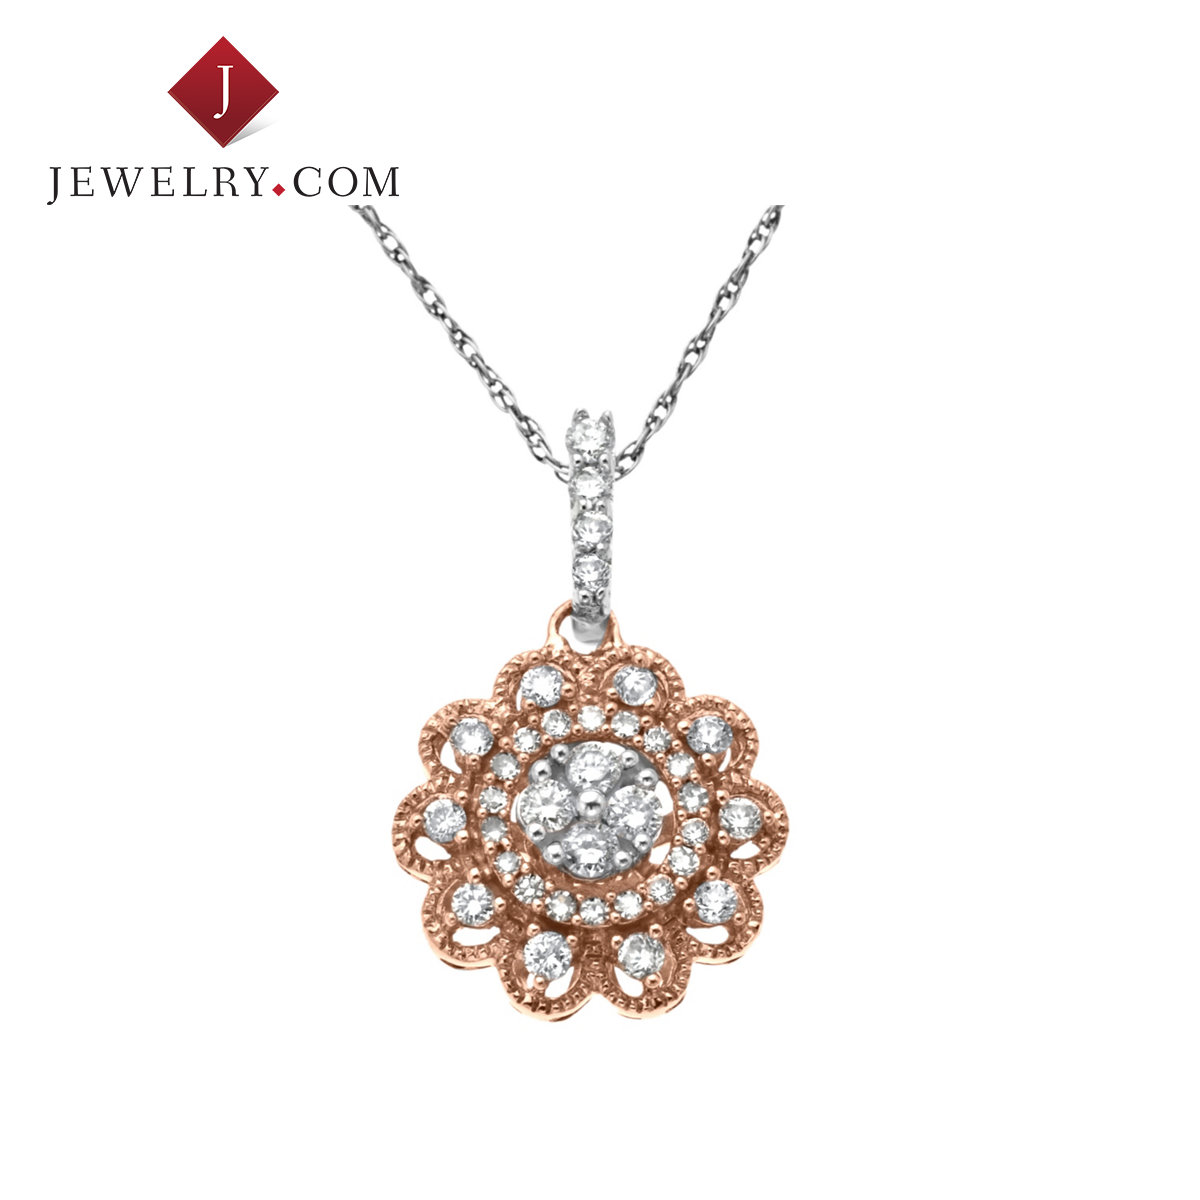 Jewelry.com official was 0.15mpa. 33ct k gold color diamond flower pendant female models refined aesthetic elegant jewelry